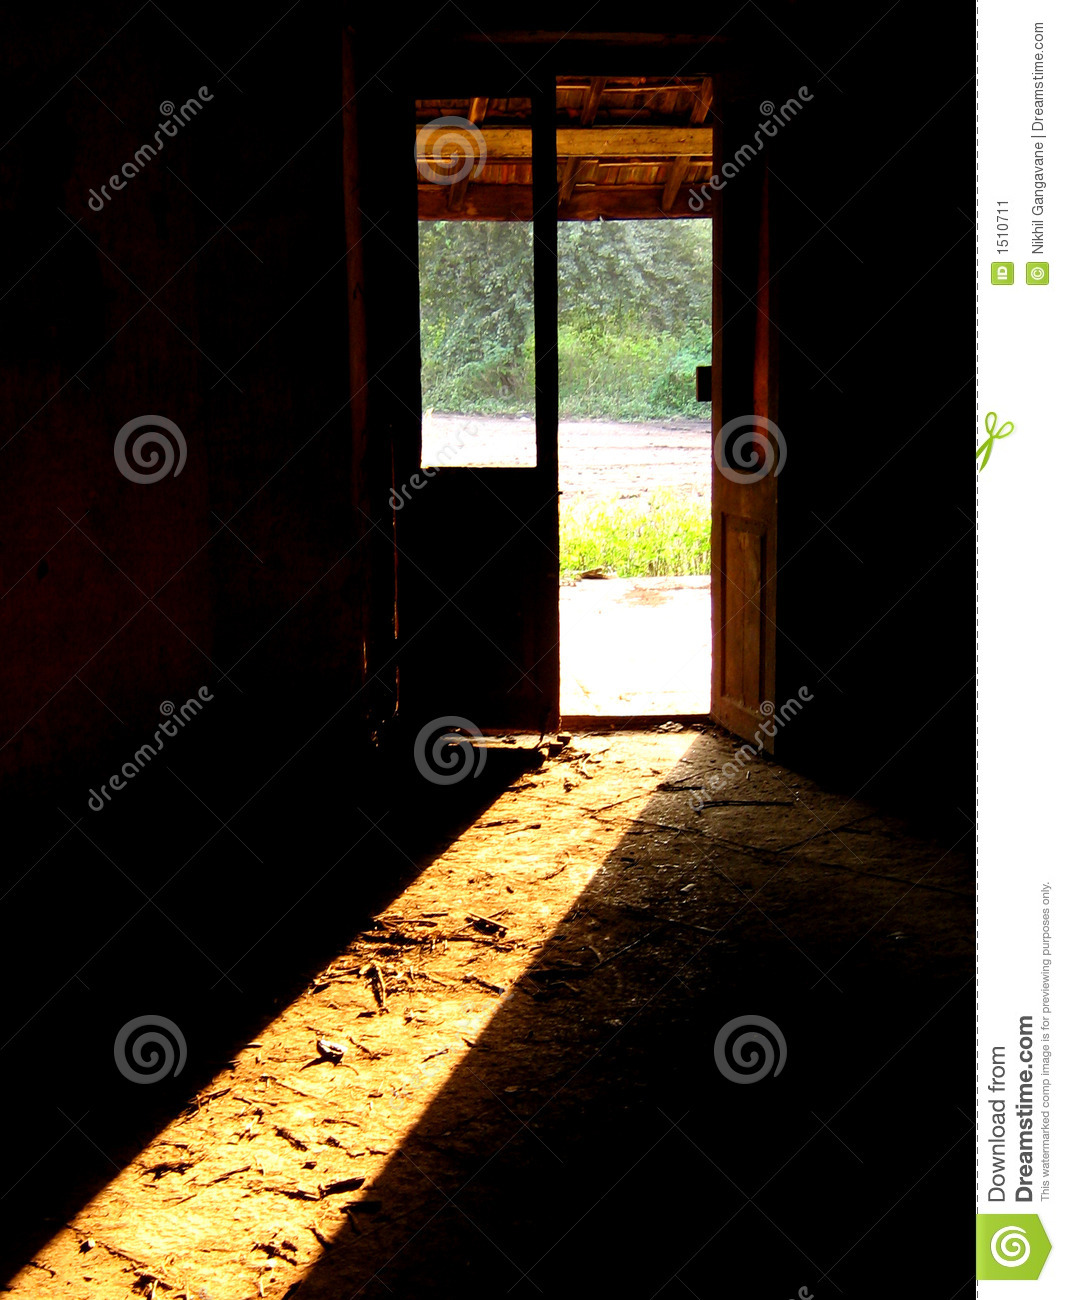 Haunted door stock image image of entrance fearsome for 13 door haunted house